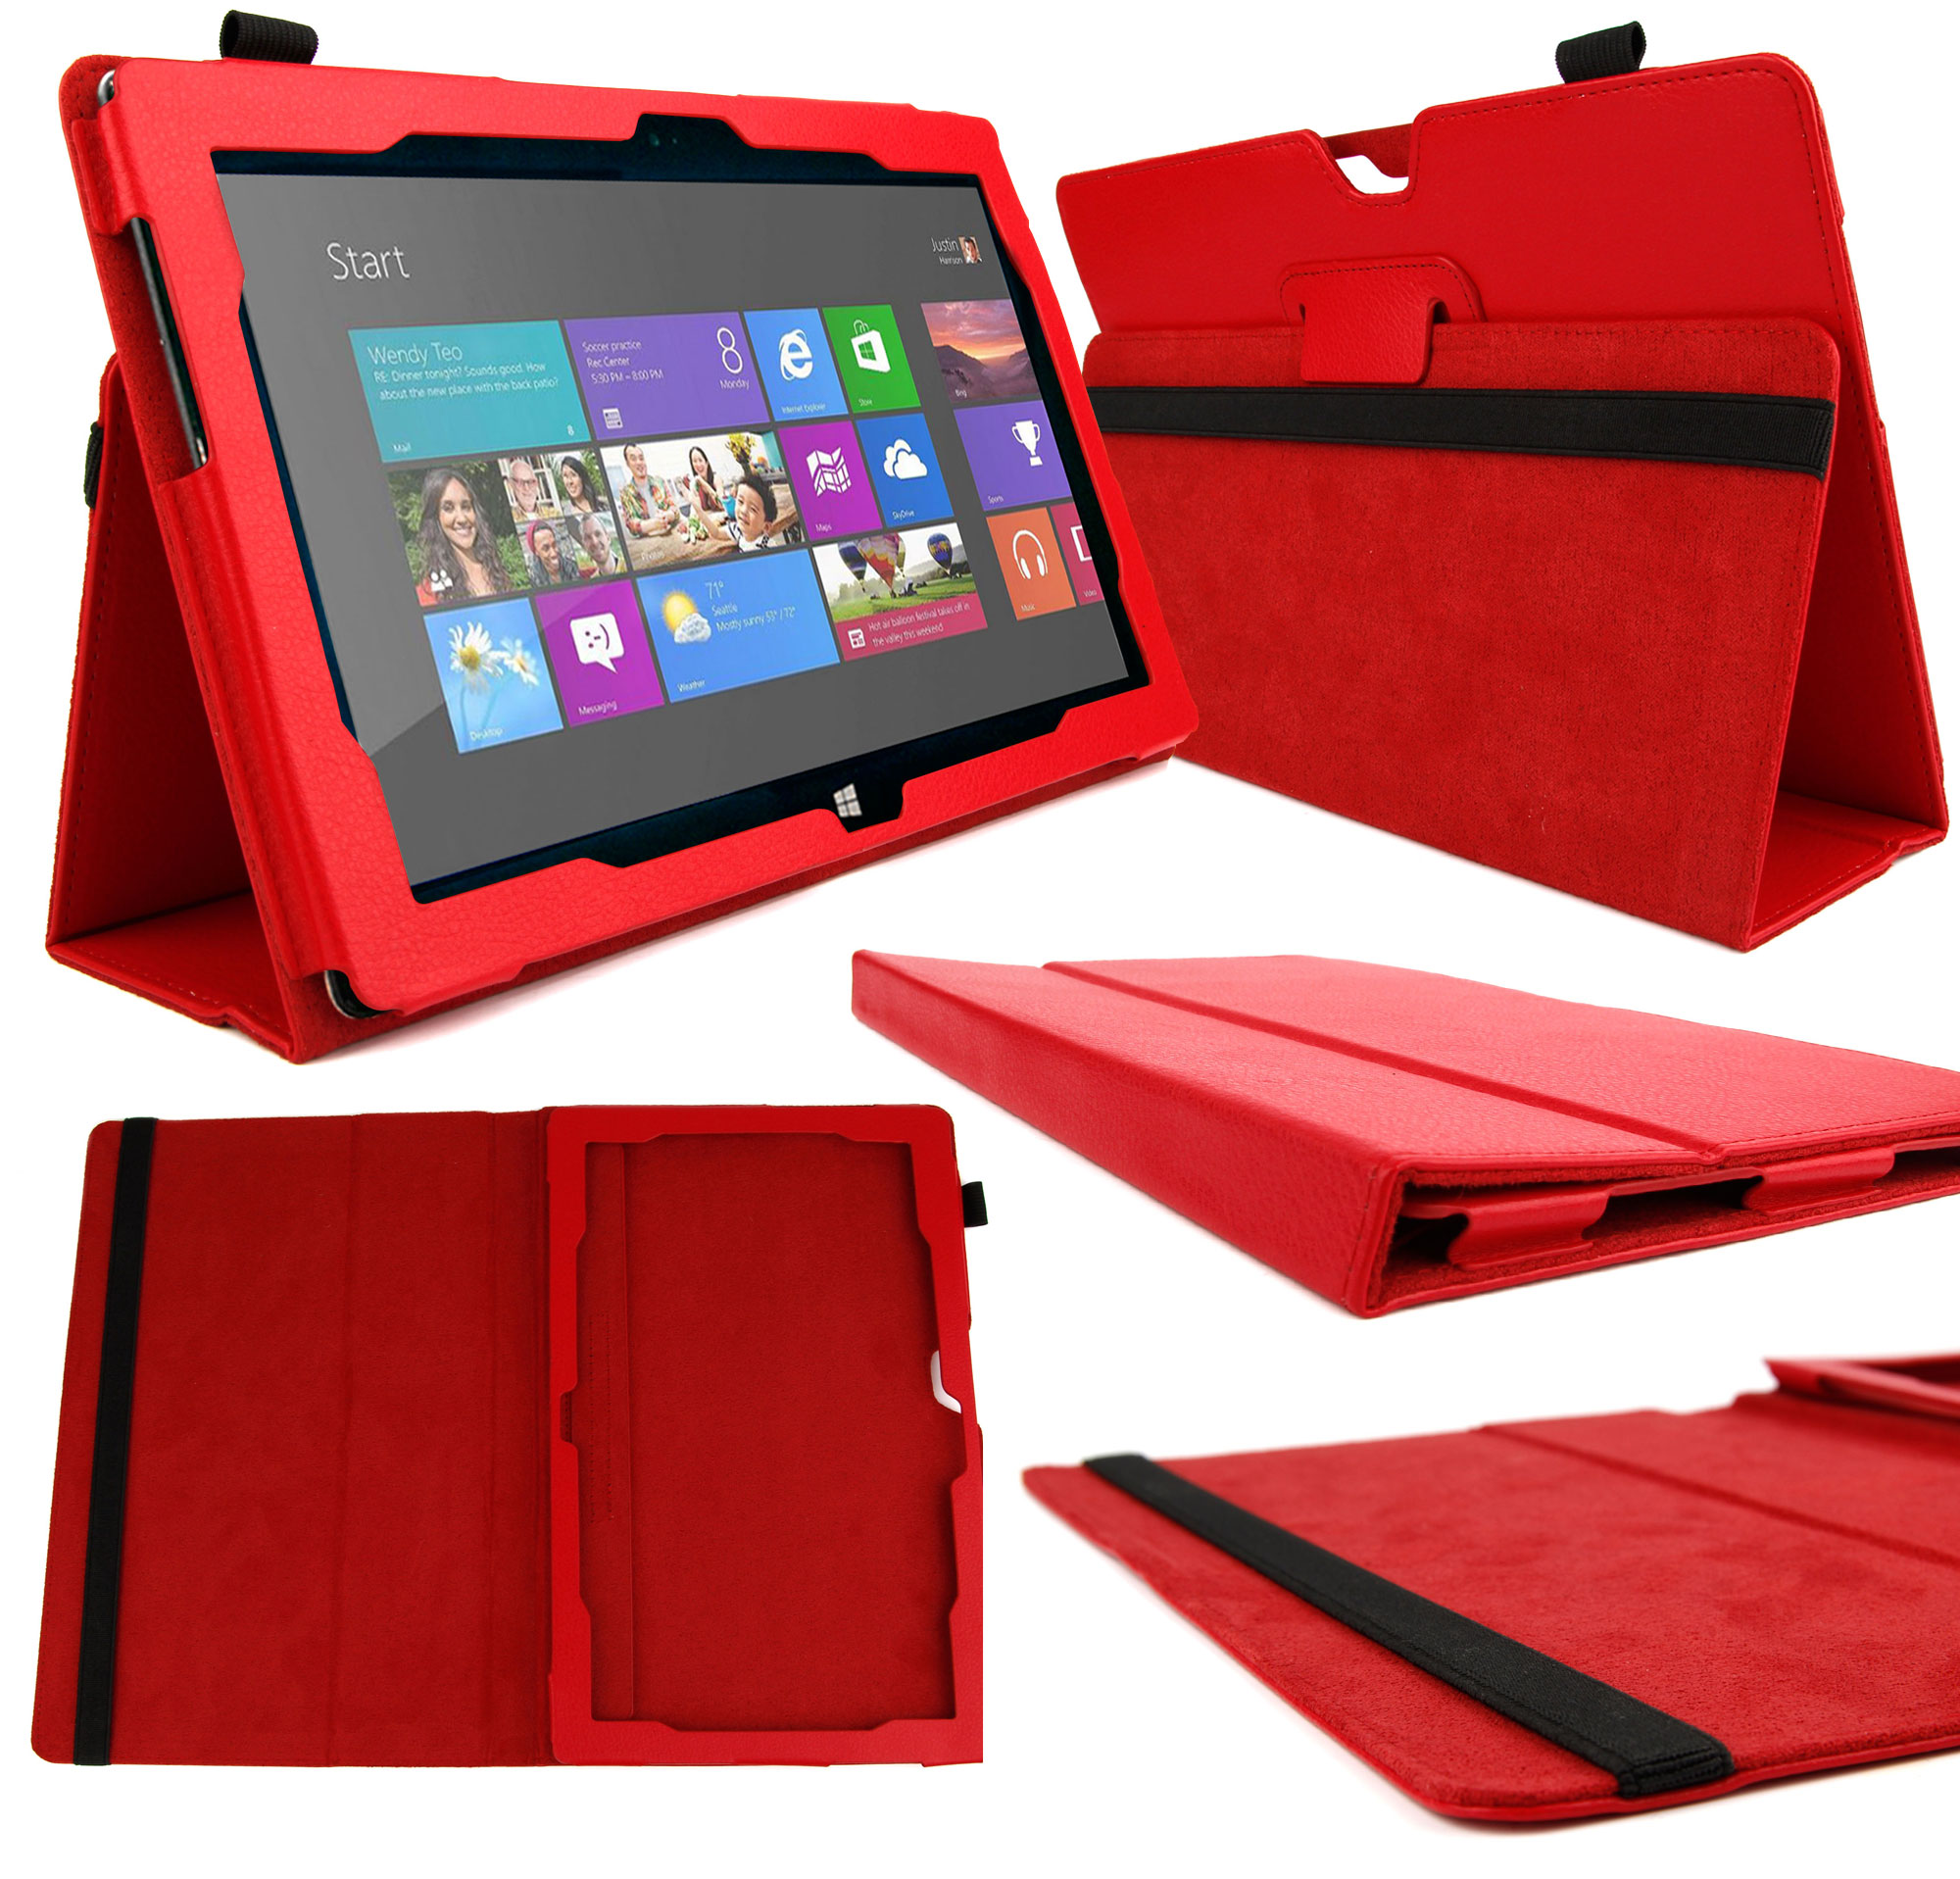 Microsoft Office Pour Tablette Etui Rouge Pour Microsoft Surface 2 Windows Rt 8 1